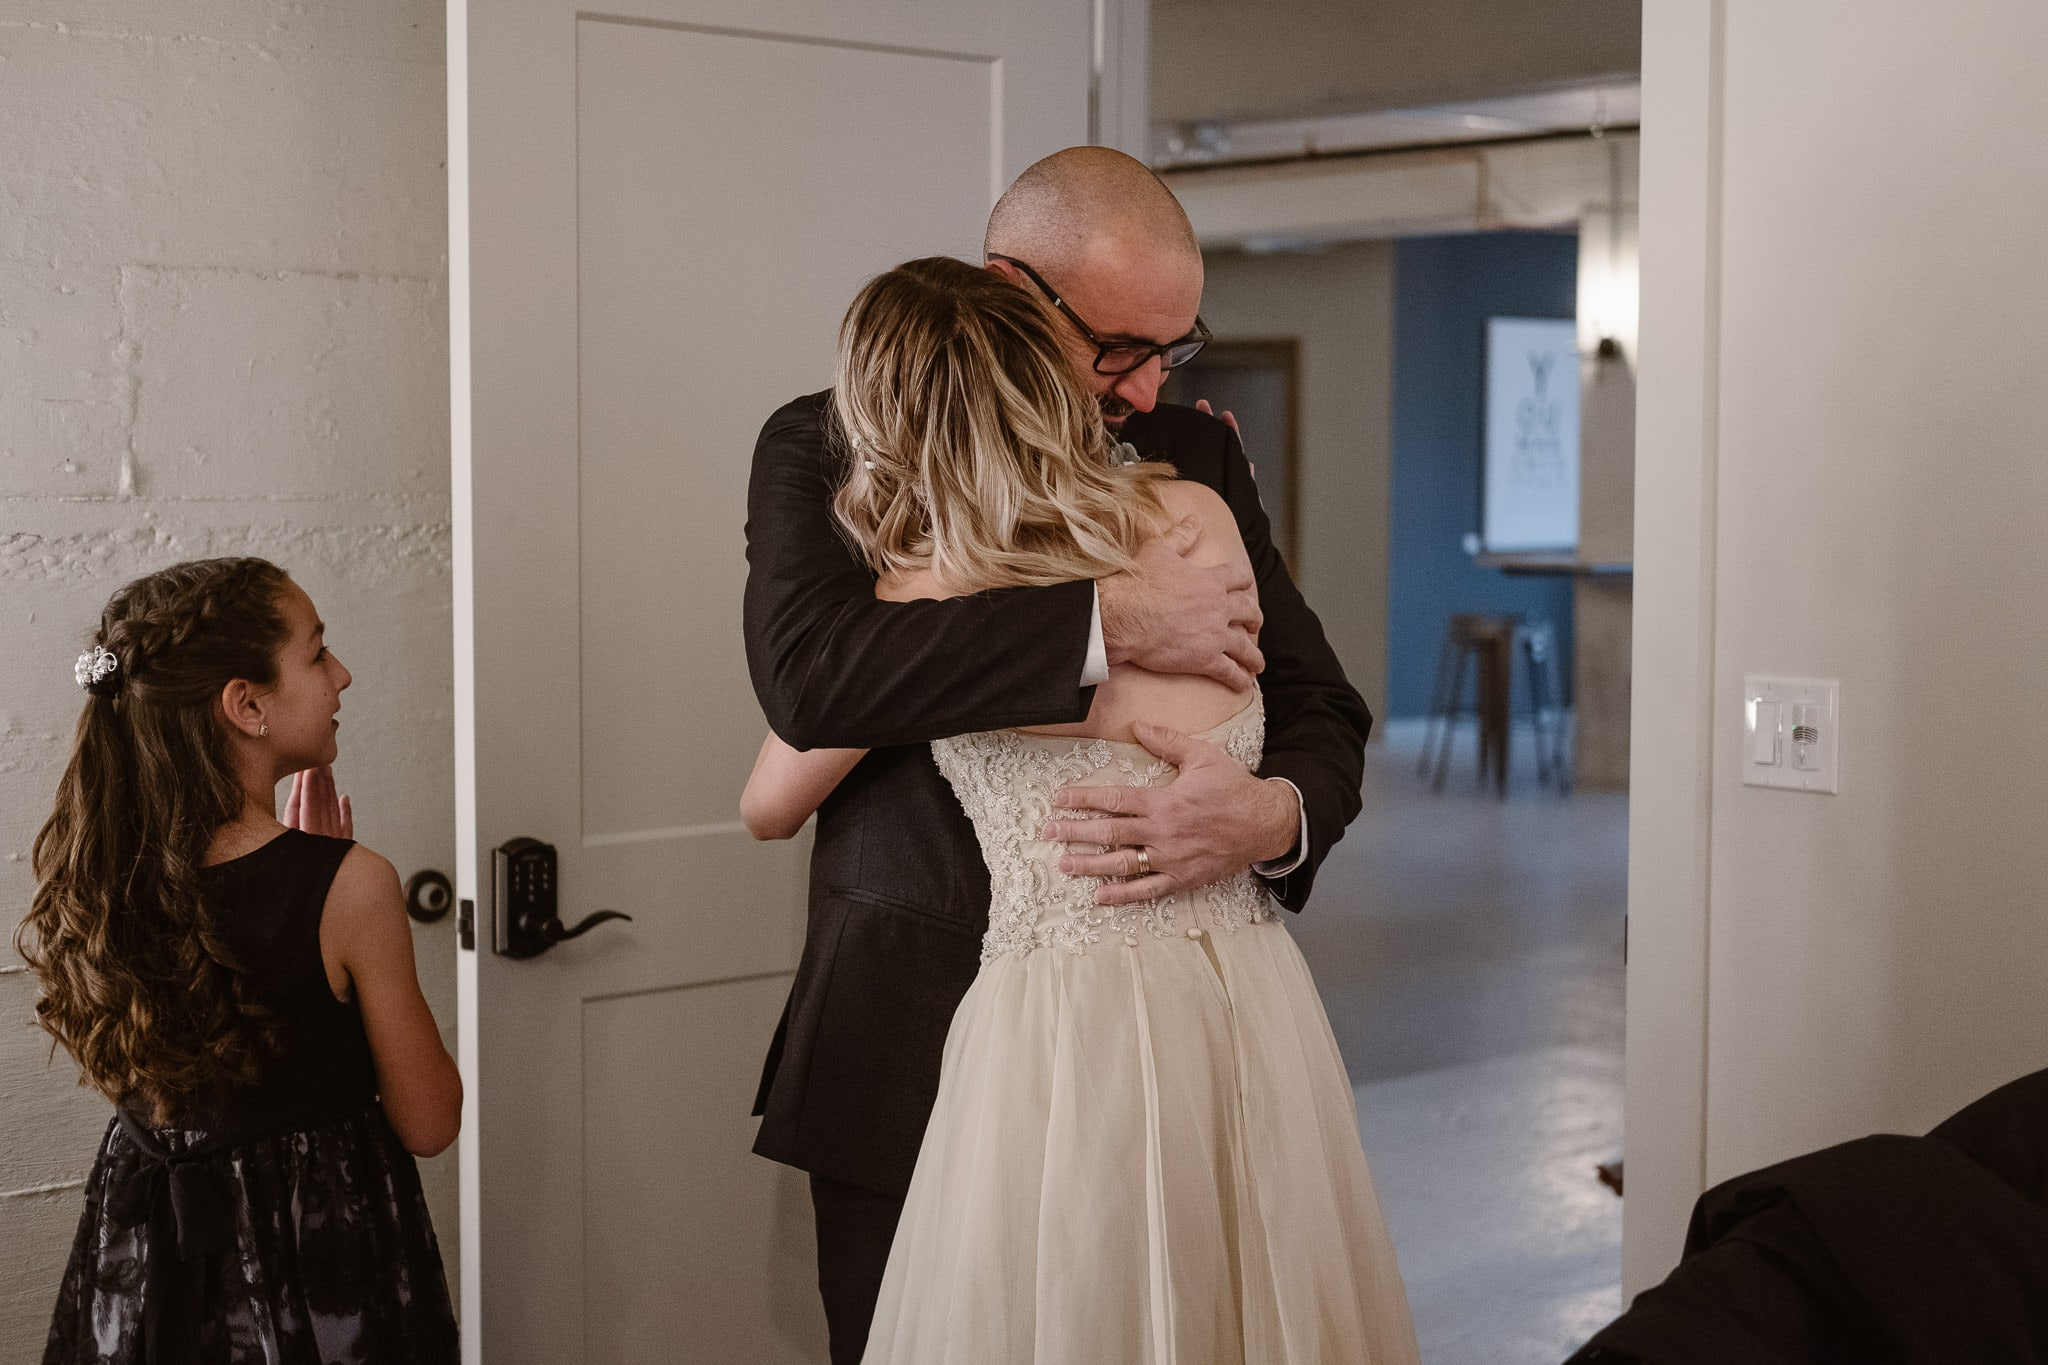 St Vrain Wedding Photographer | Longmont Wedding Photographer | Colorado Winter Wedding Photographer, Colorado industrial chic wedding, bride and her father hugging